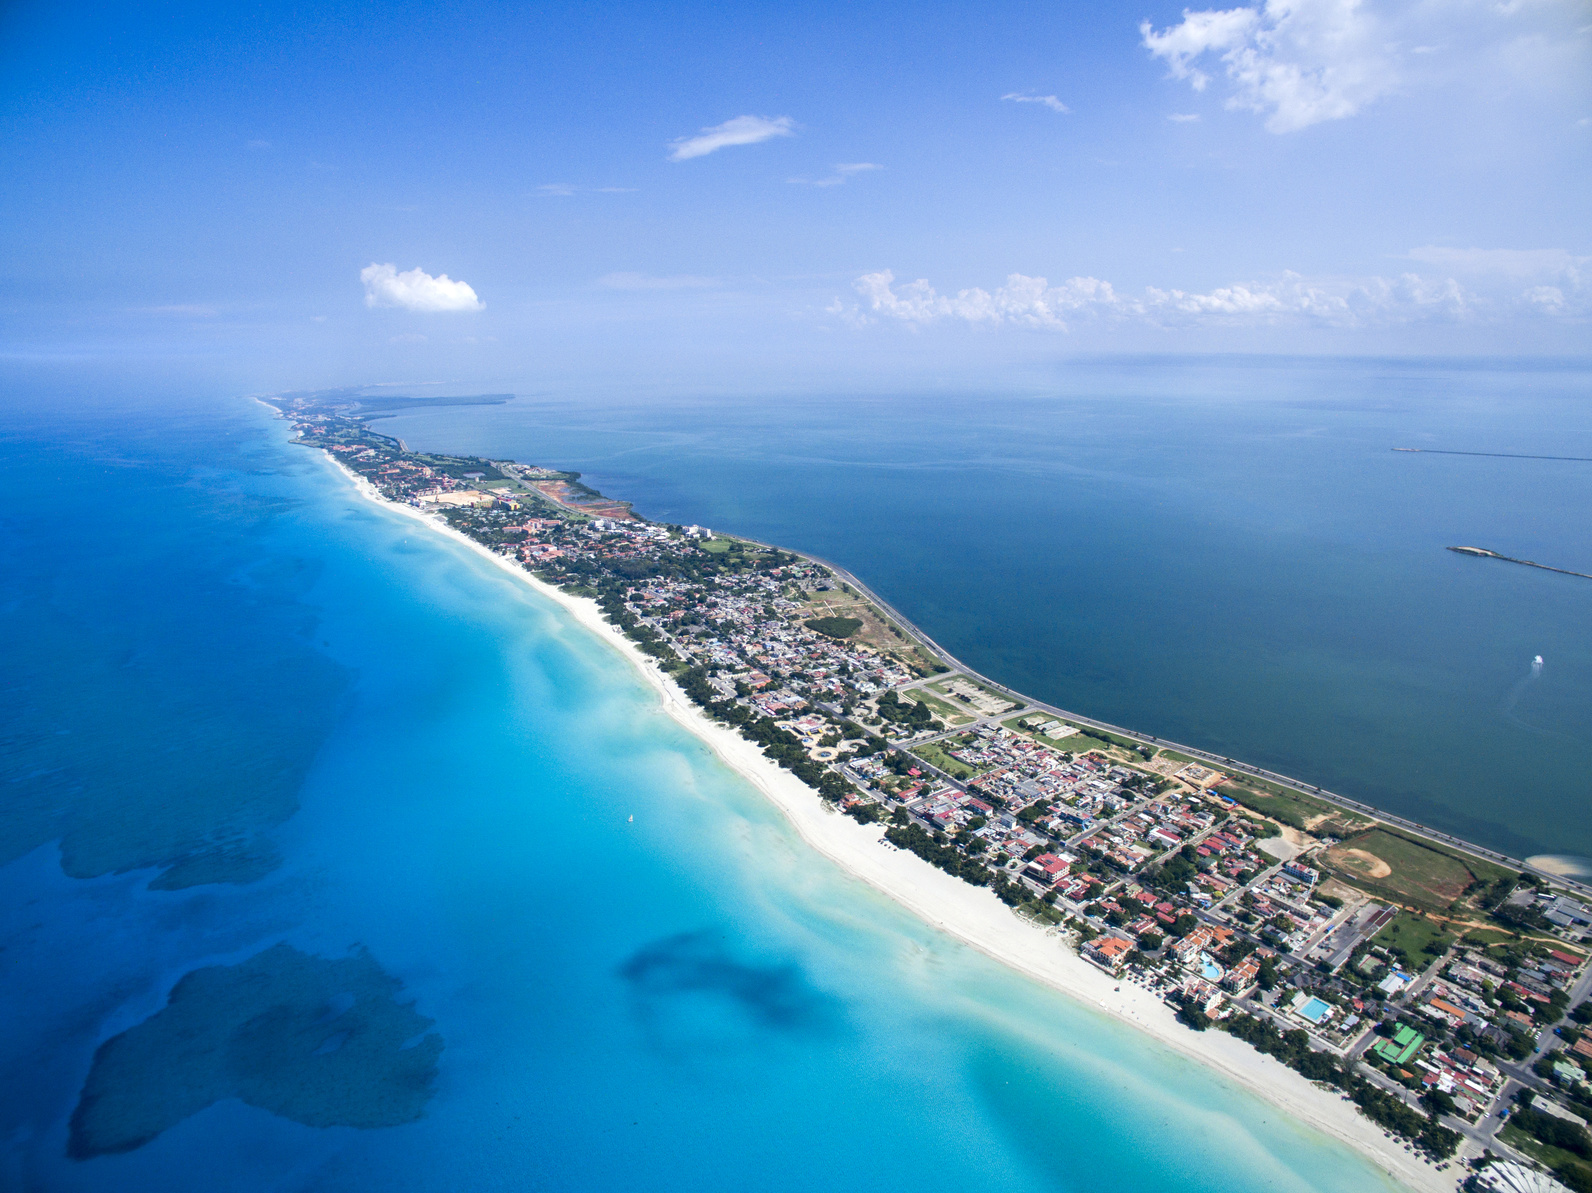 Aerial image of white sandy beaches in Varadero Cuba